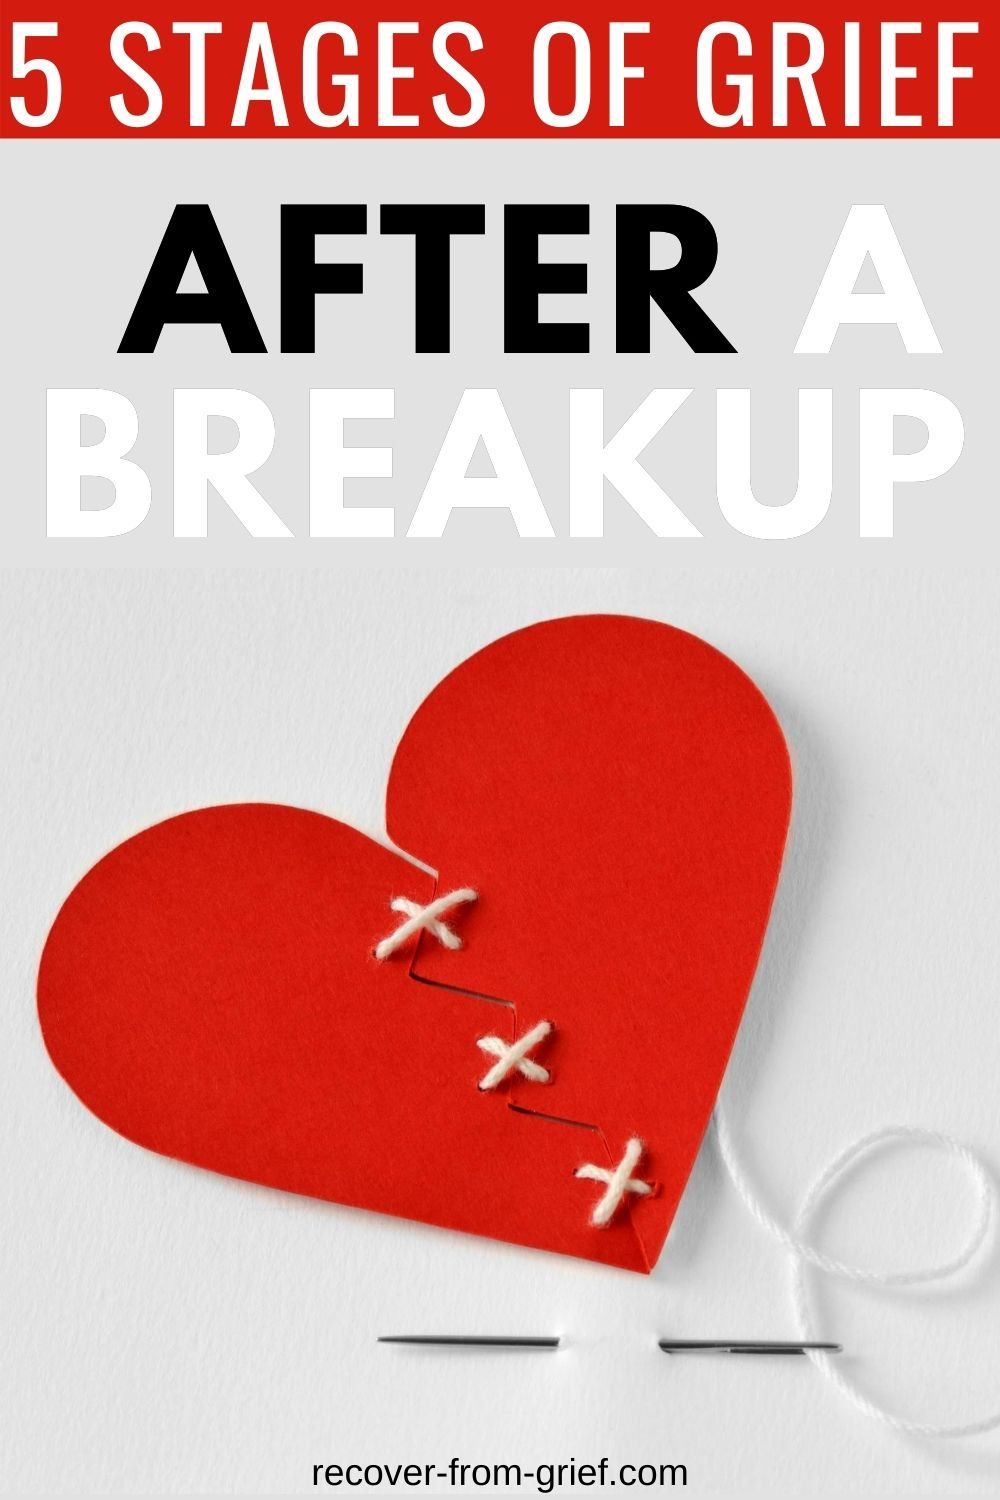 5 stages of grief after breakup - Pinterest image